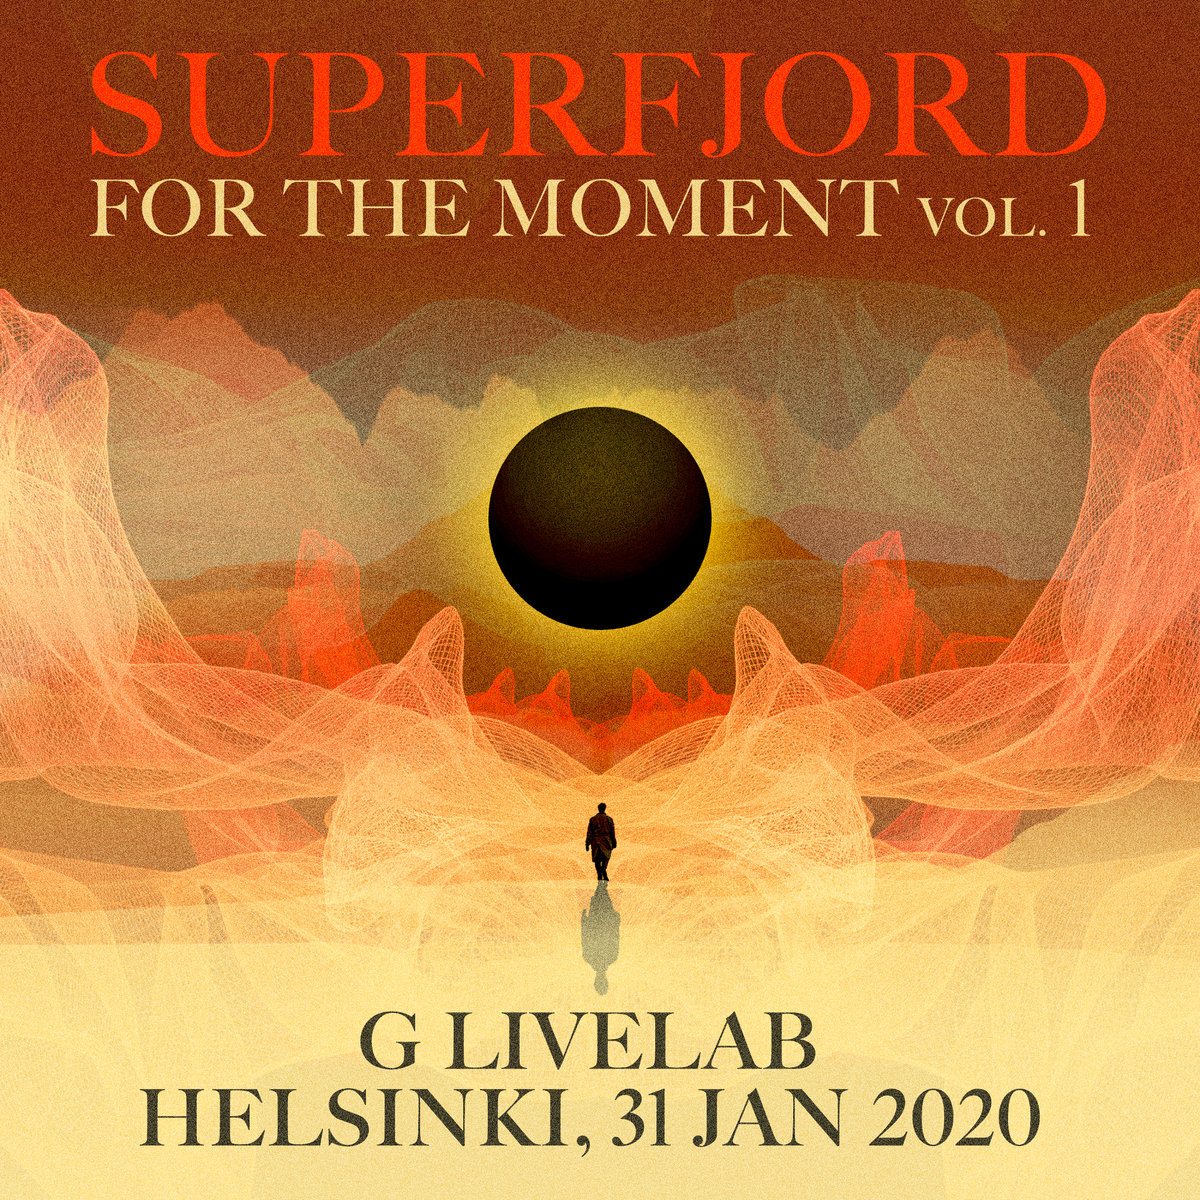 superfjord for the moment vol 1